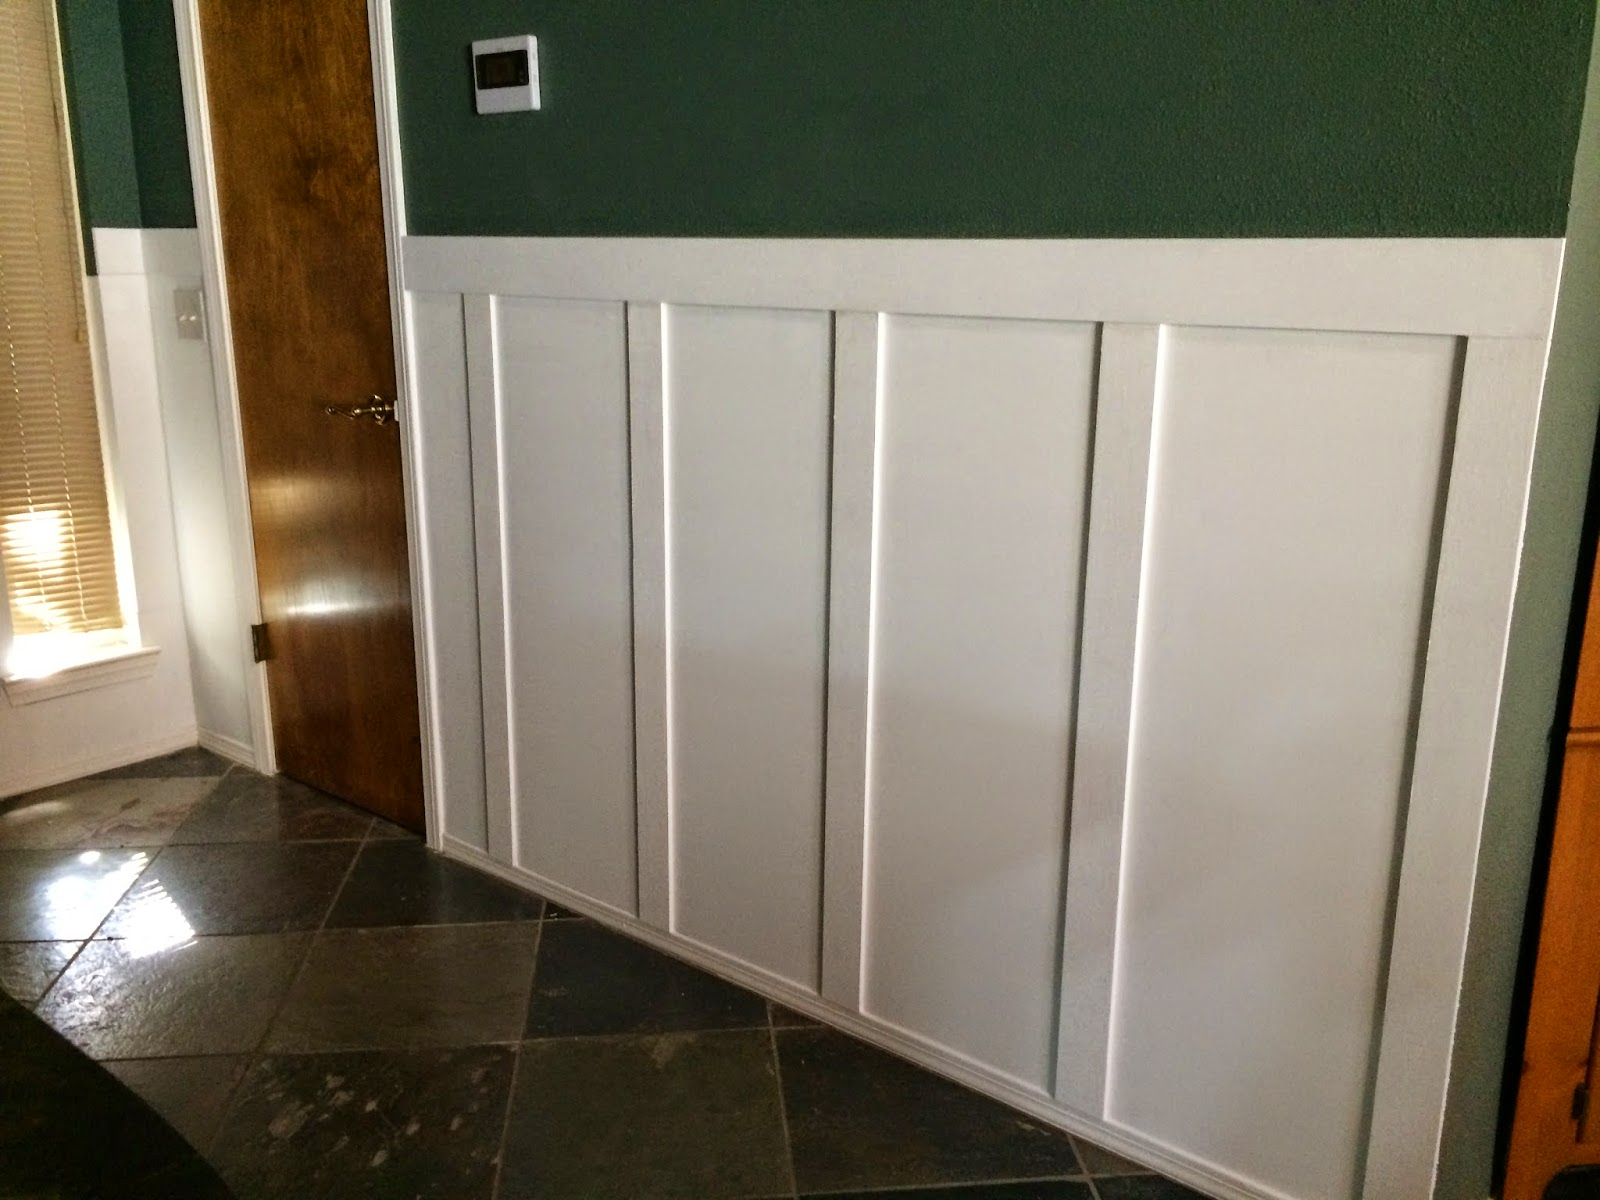 wainscoting recessed panel with Diy Board And Batten Wainscoting on Benjamin Moore Glass Slipper also Diy Board And Batten Wainscoting additionally Tall Double Panel Wainscoting together with Wood Paneling in addition Planning A Wainscoting Installation.